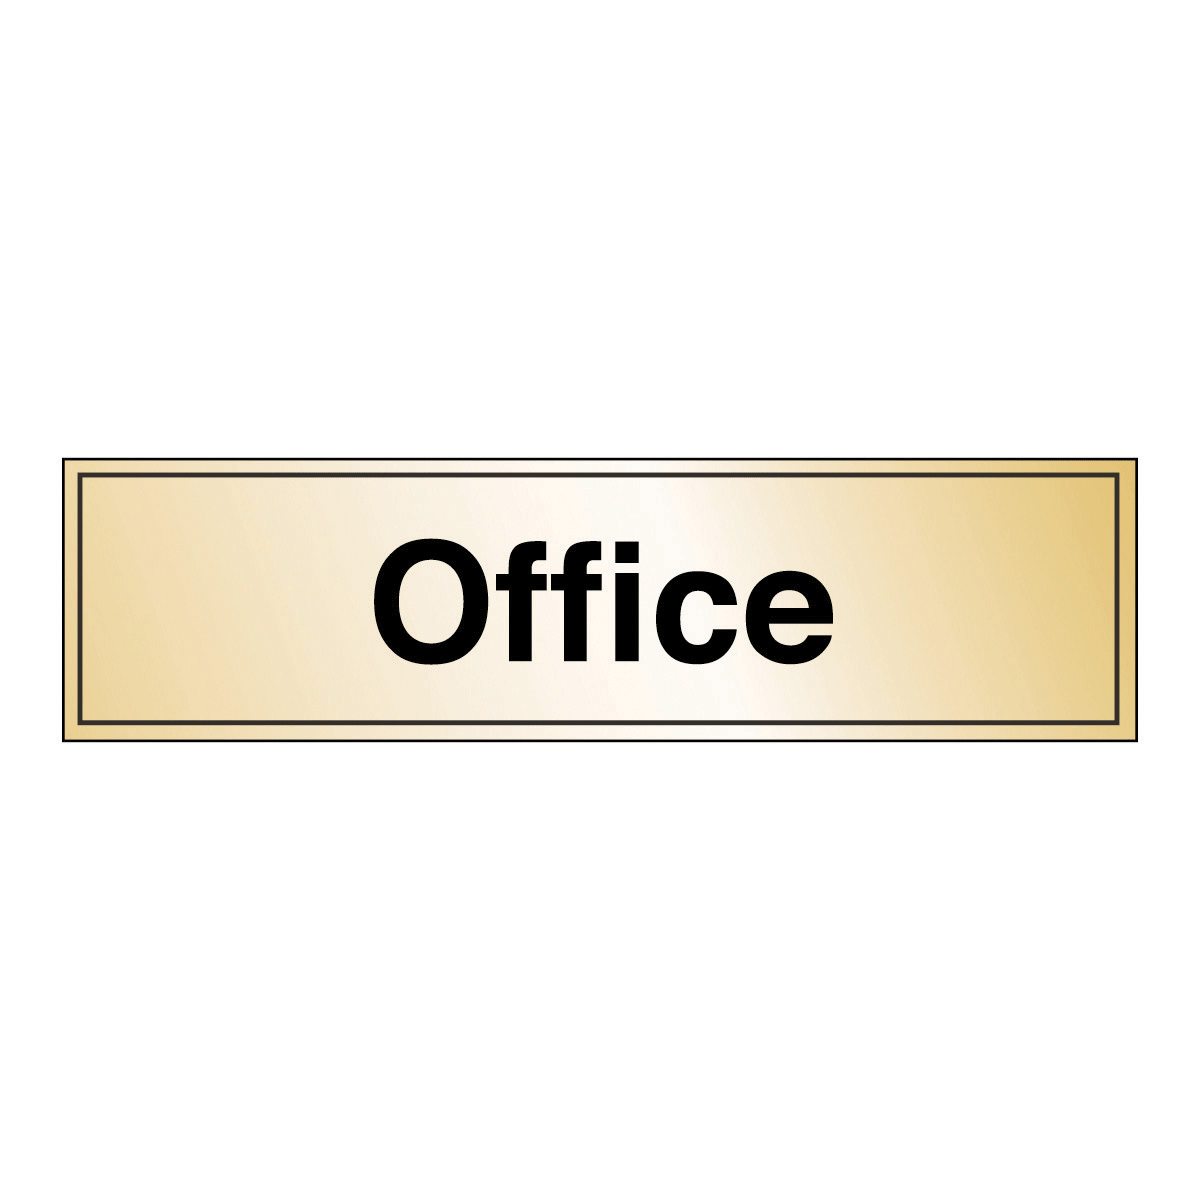 effect office safety sign gold silver effect sign from bigdug uk